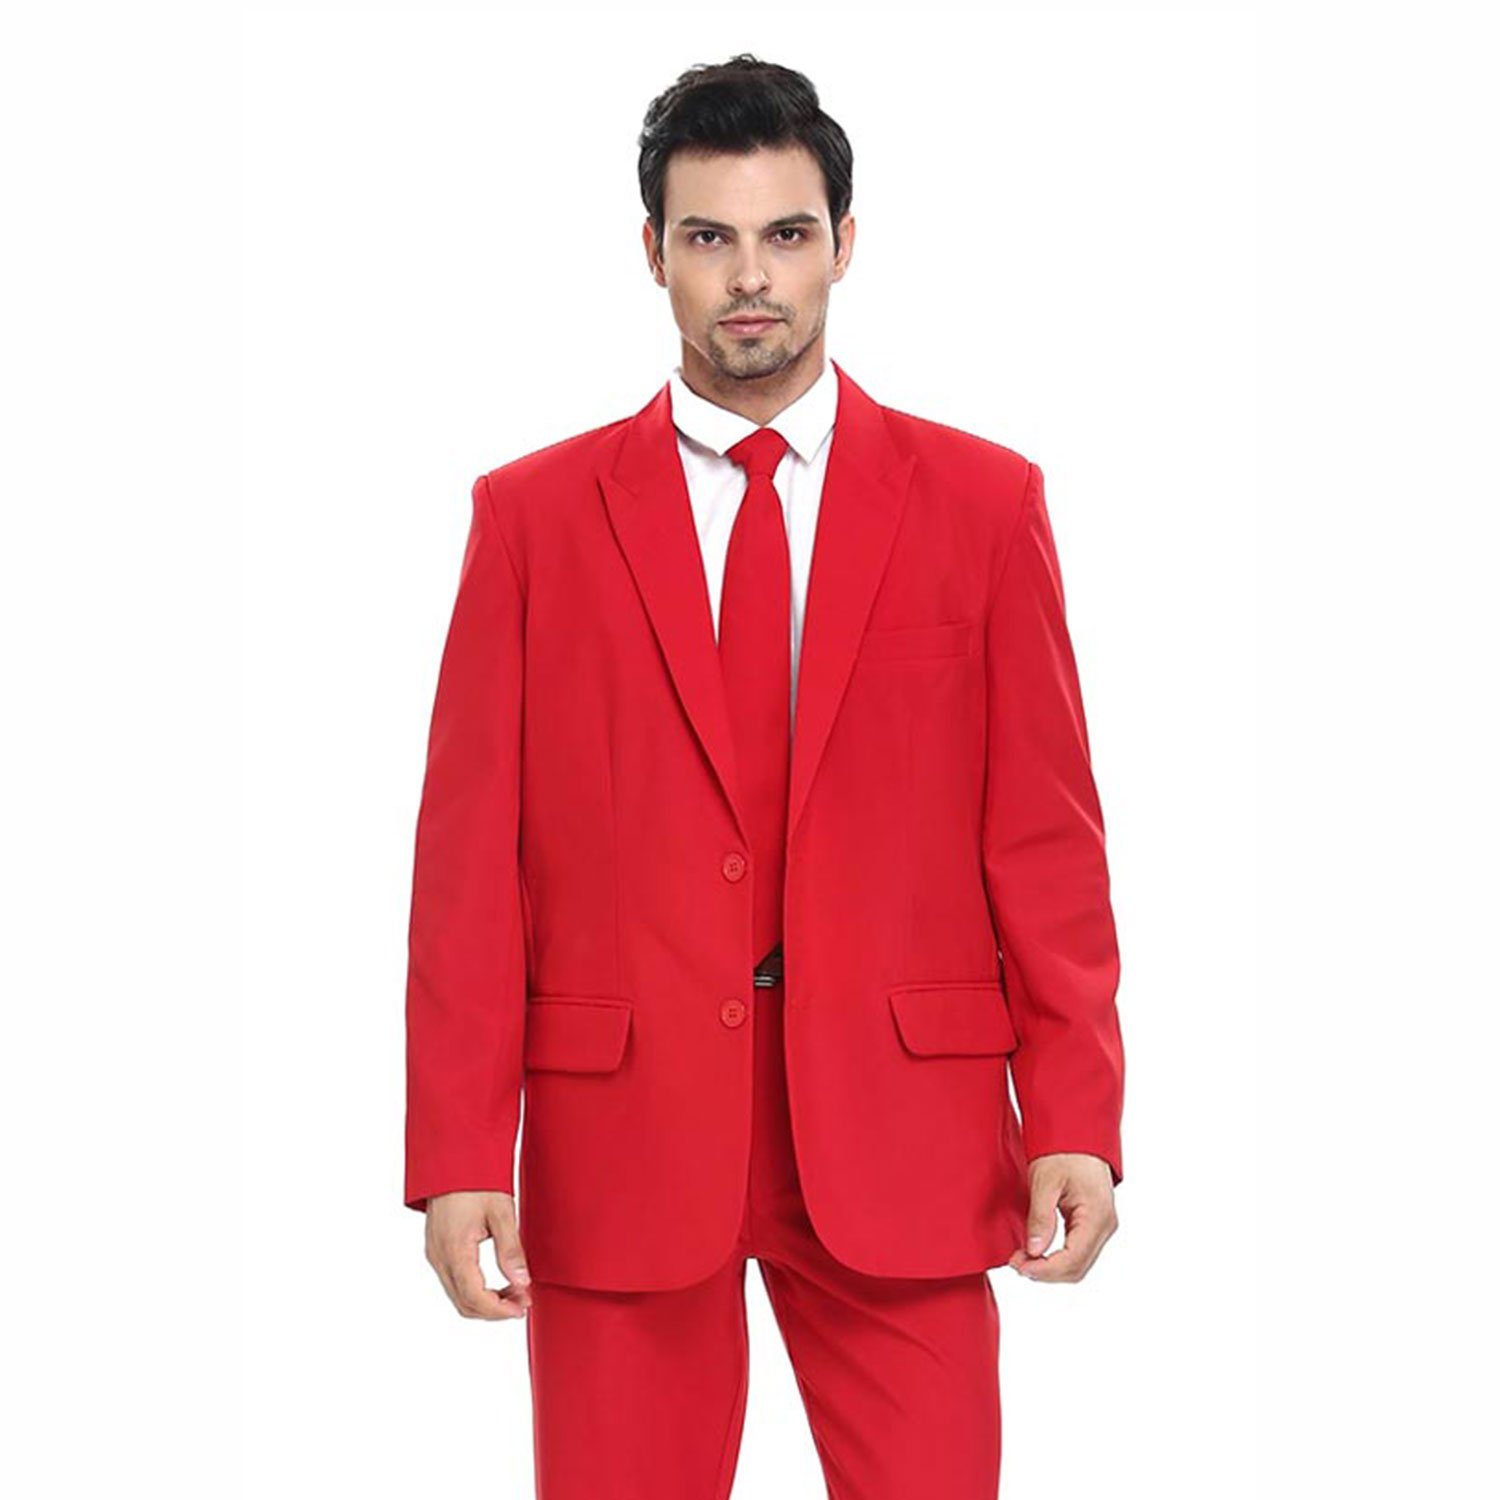 Christmas Party Suit Men.Mens Ugly Christmas Party Suit Solid Red